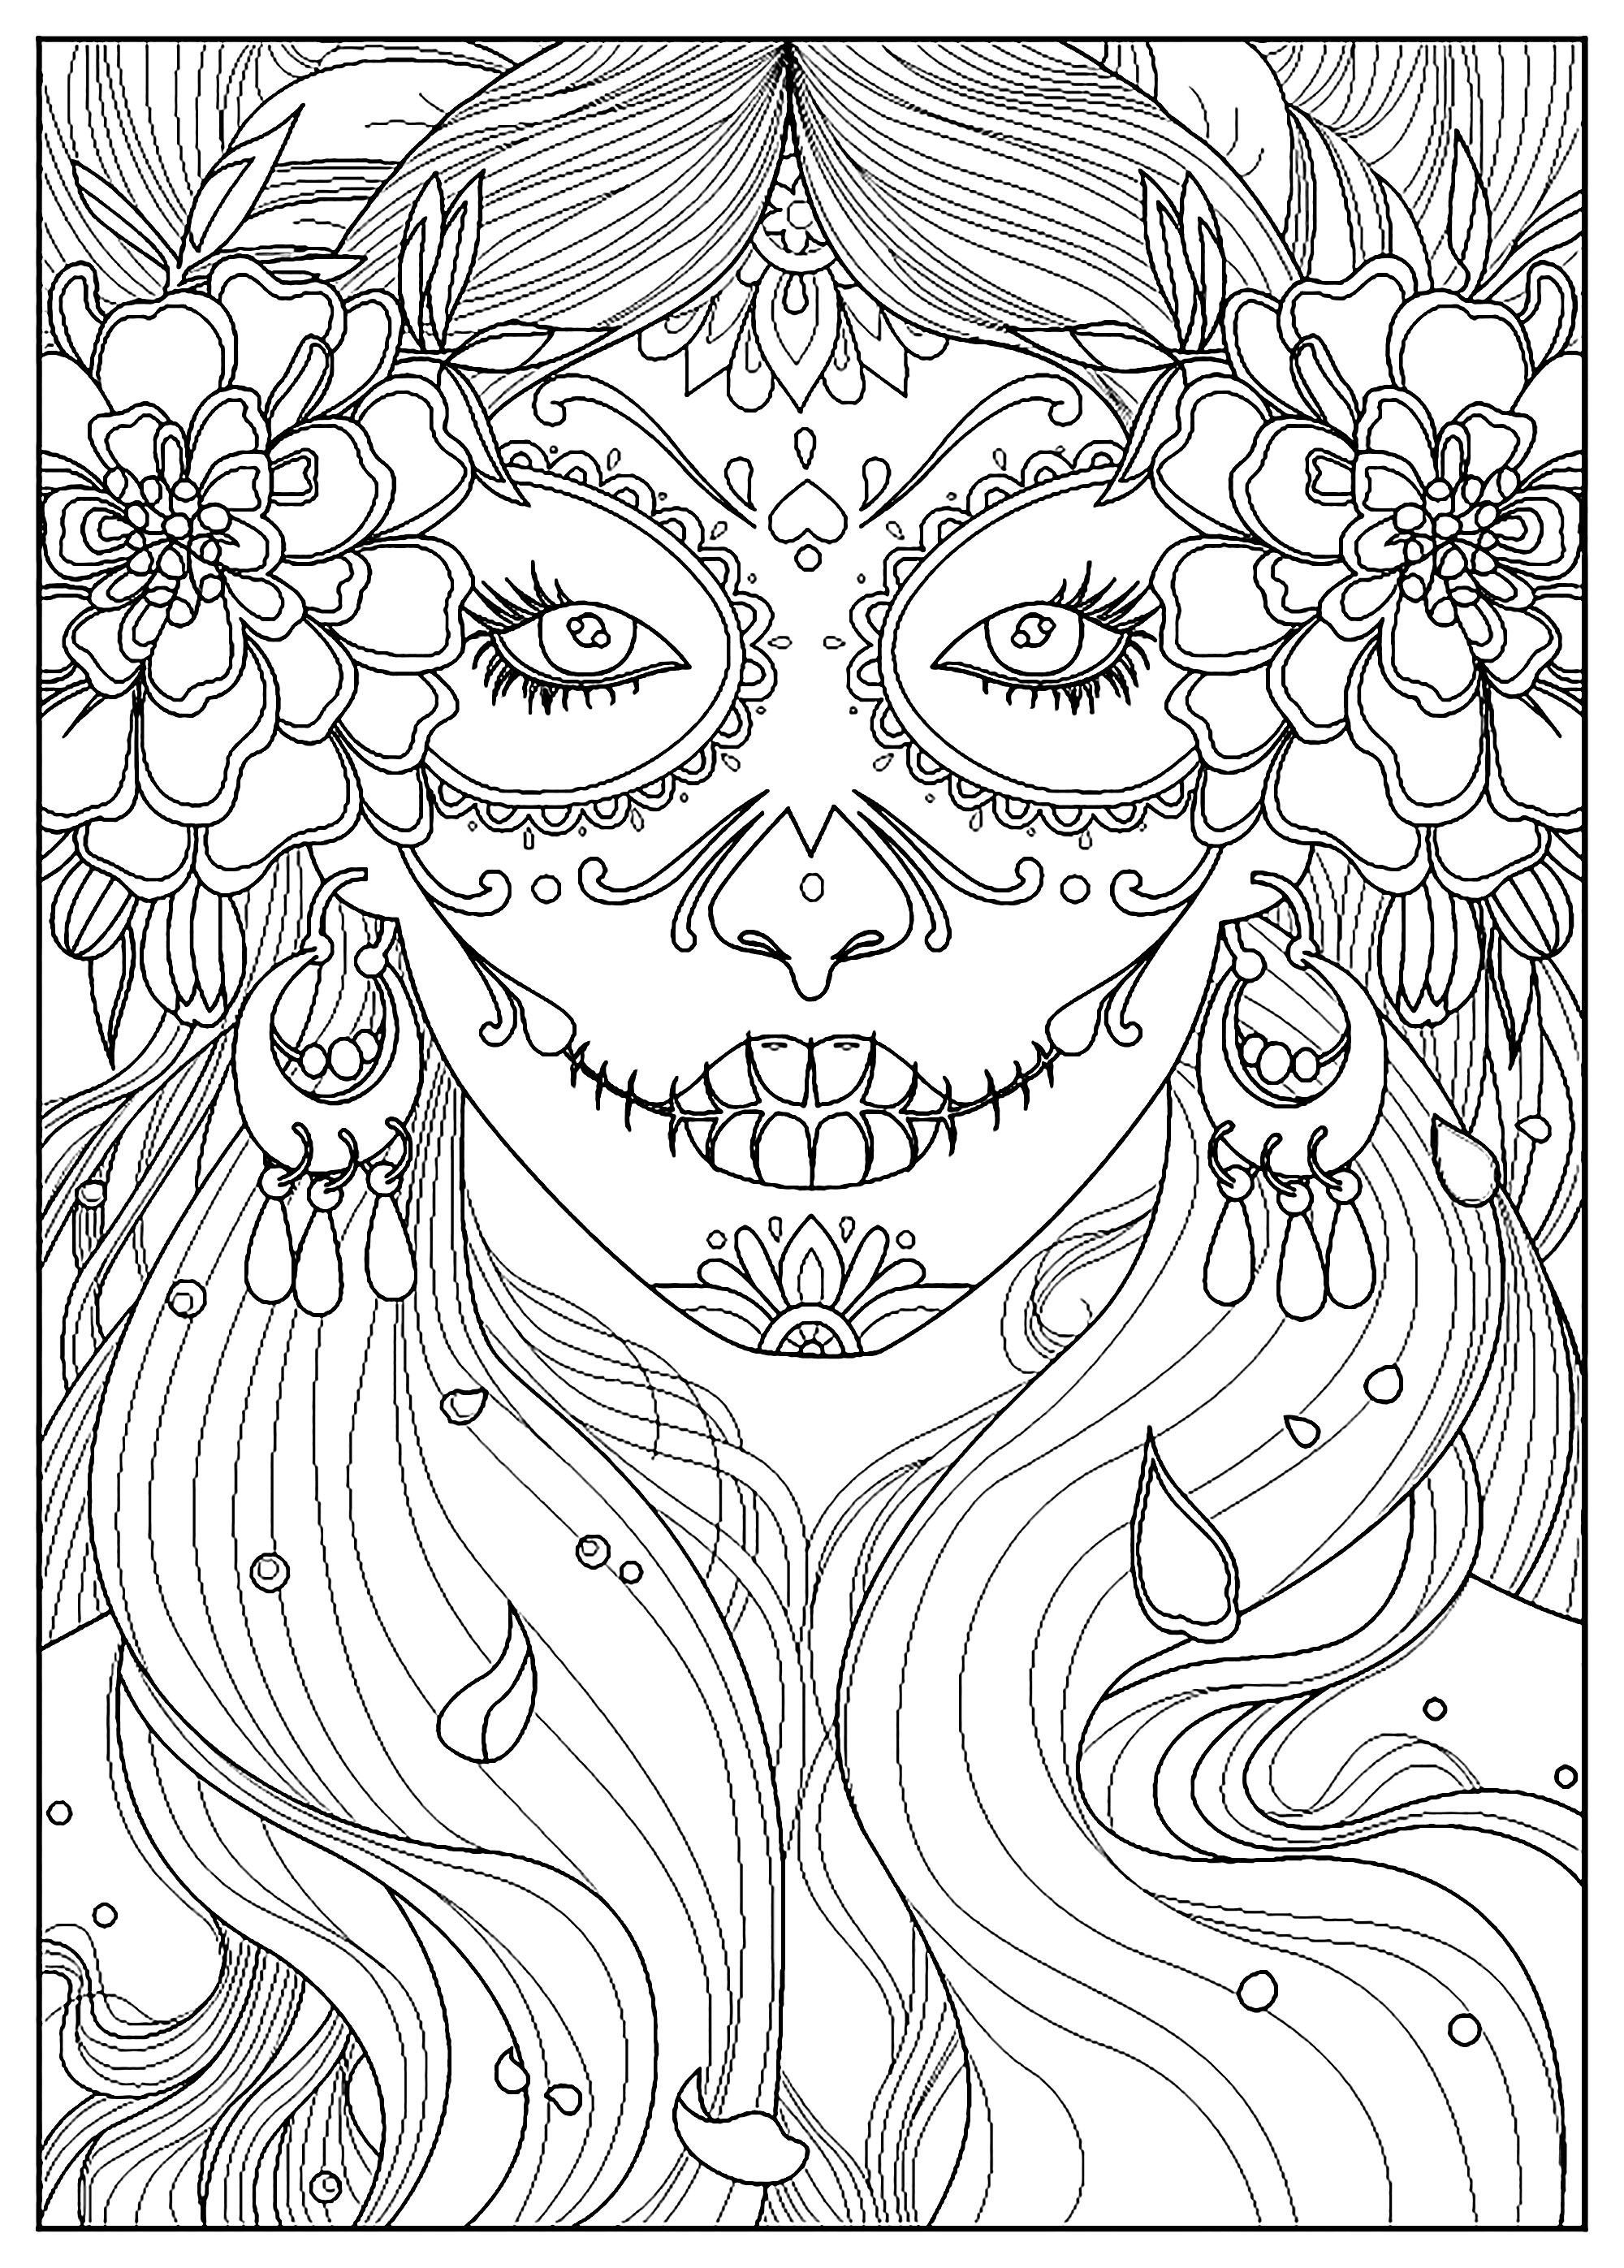 Day of the dead - Fishes coloring pages for adults Adult Coloring Pages